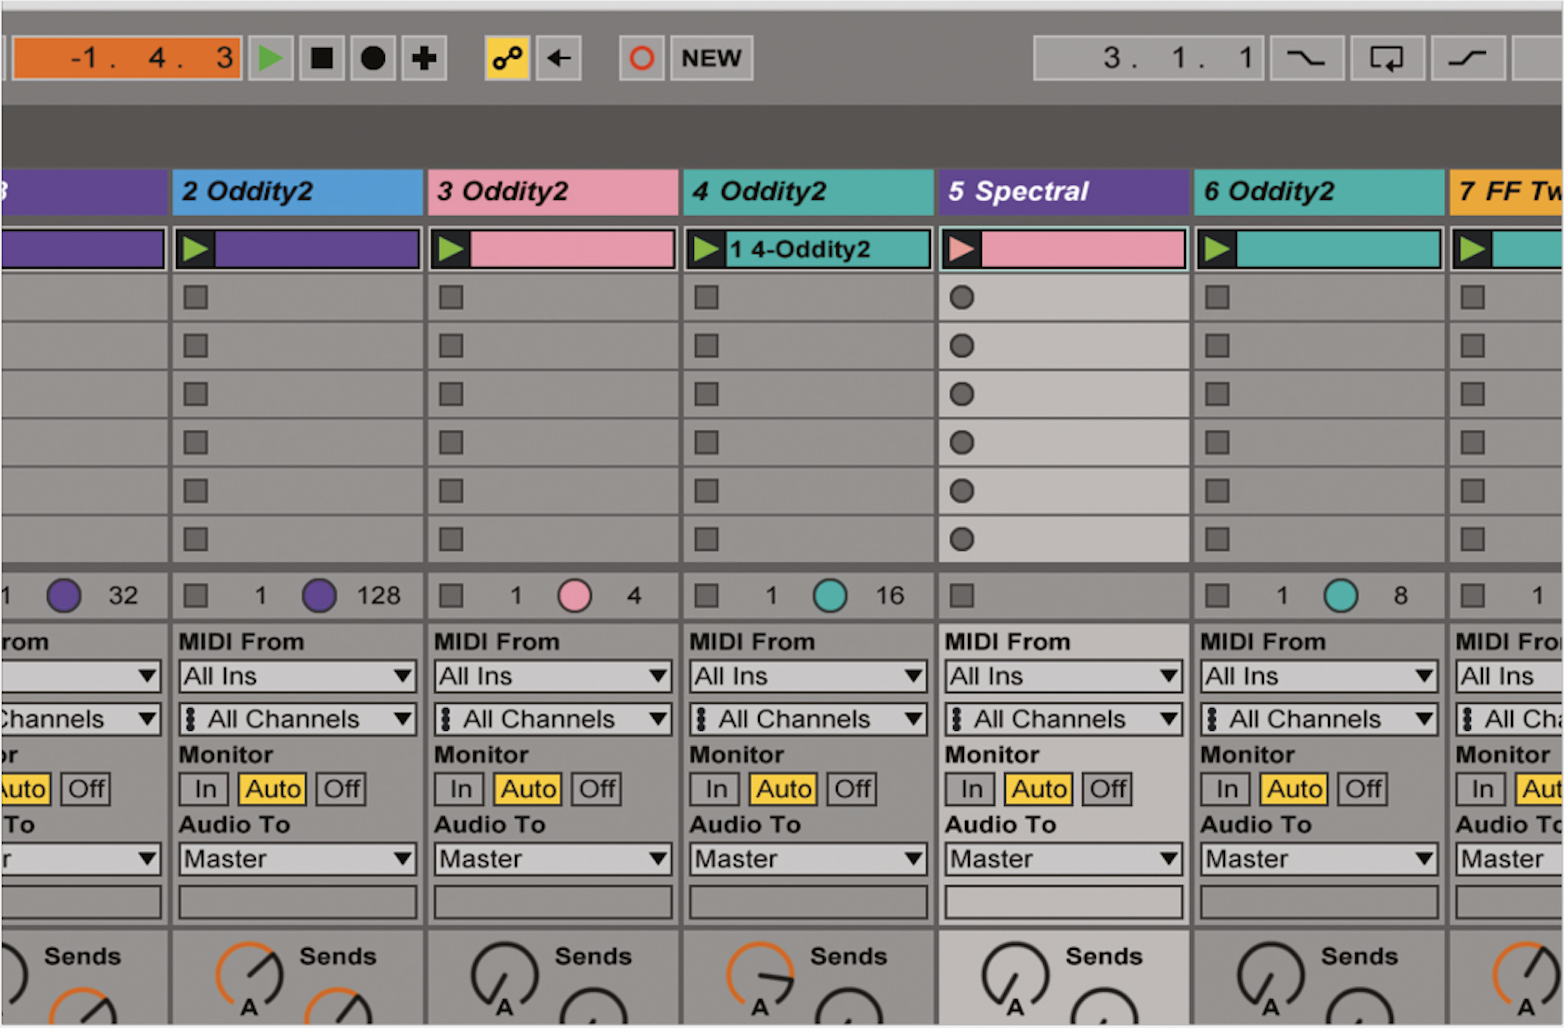 The Lazy Guide to Ableton Live: Part 5 - Clip Automation